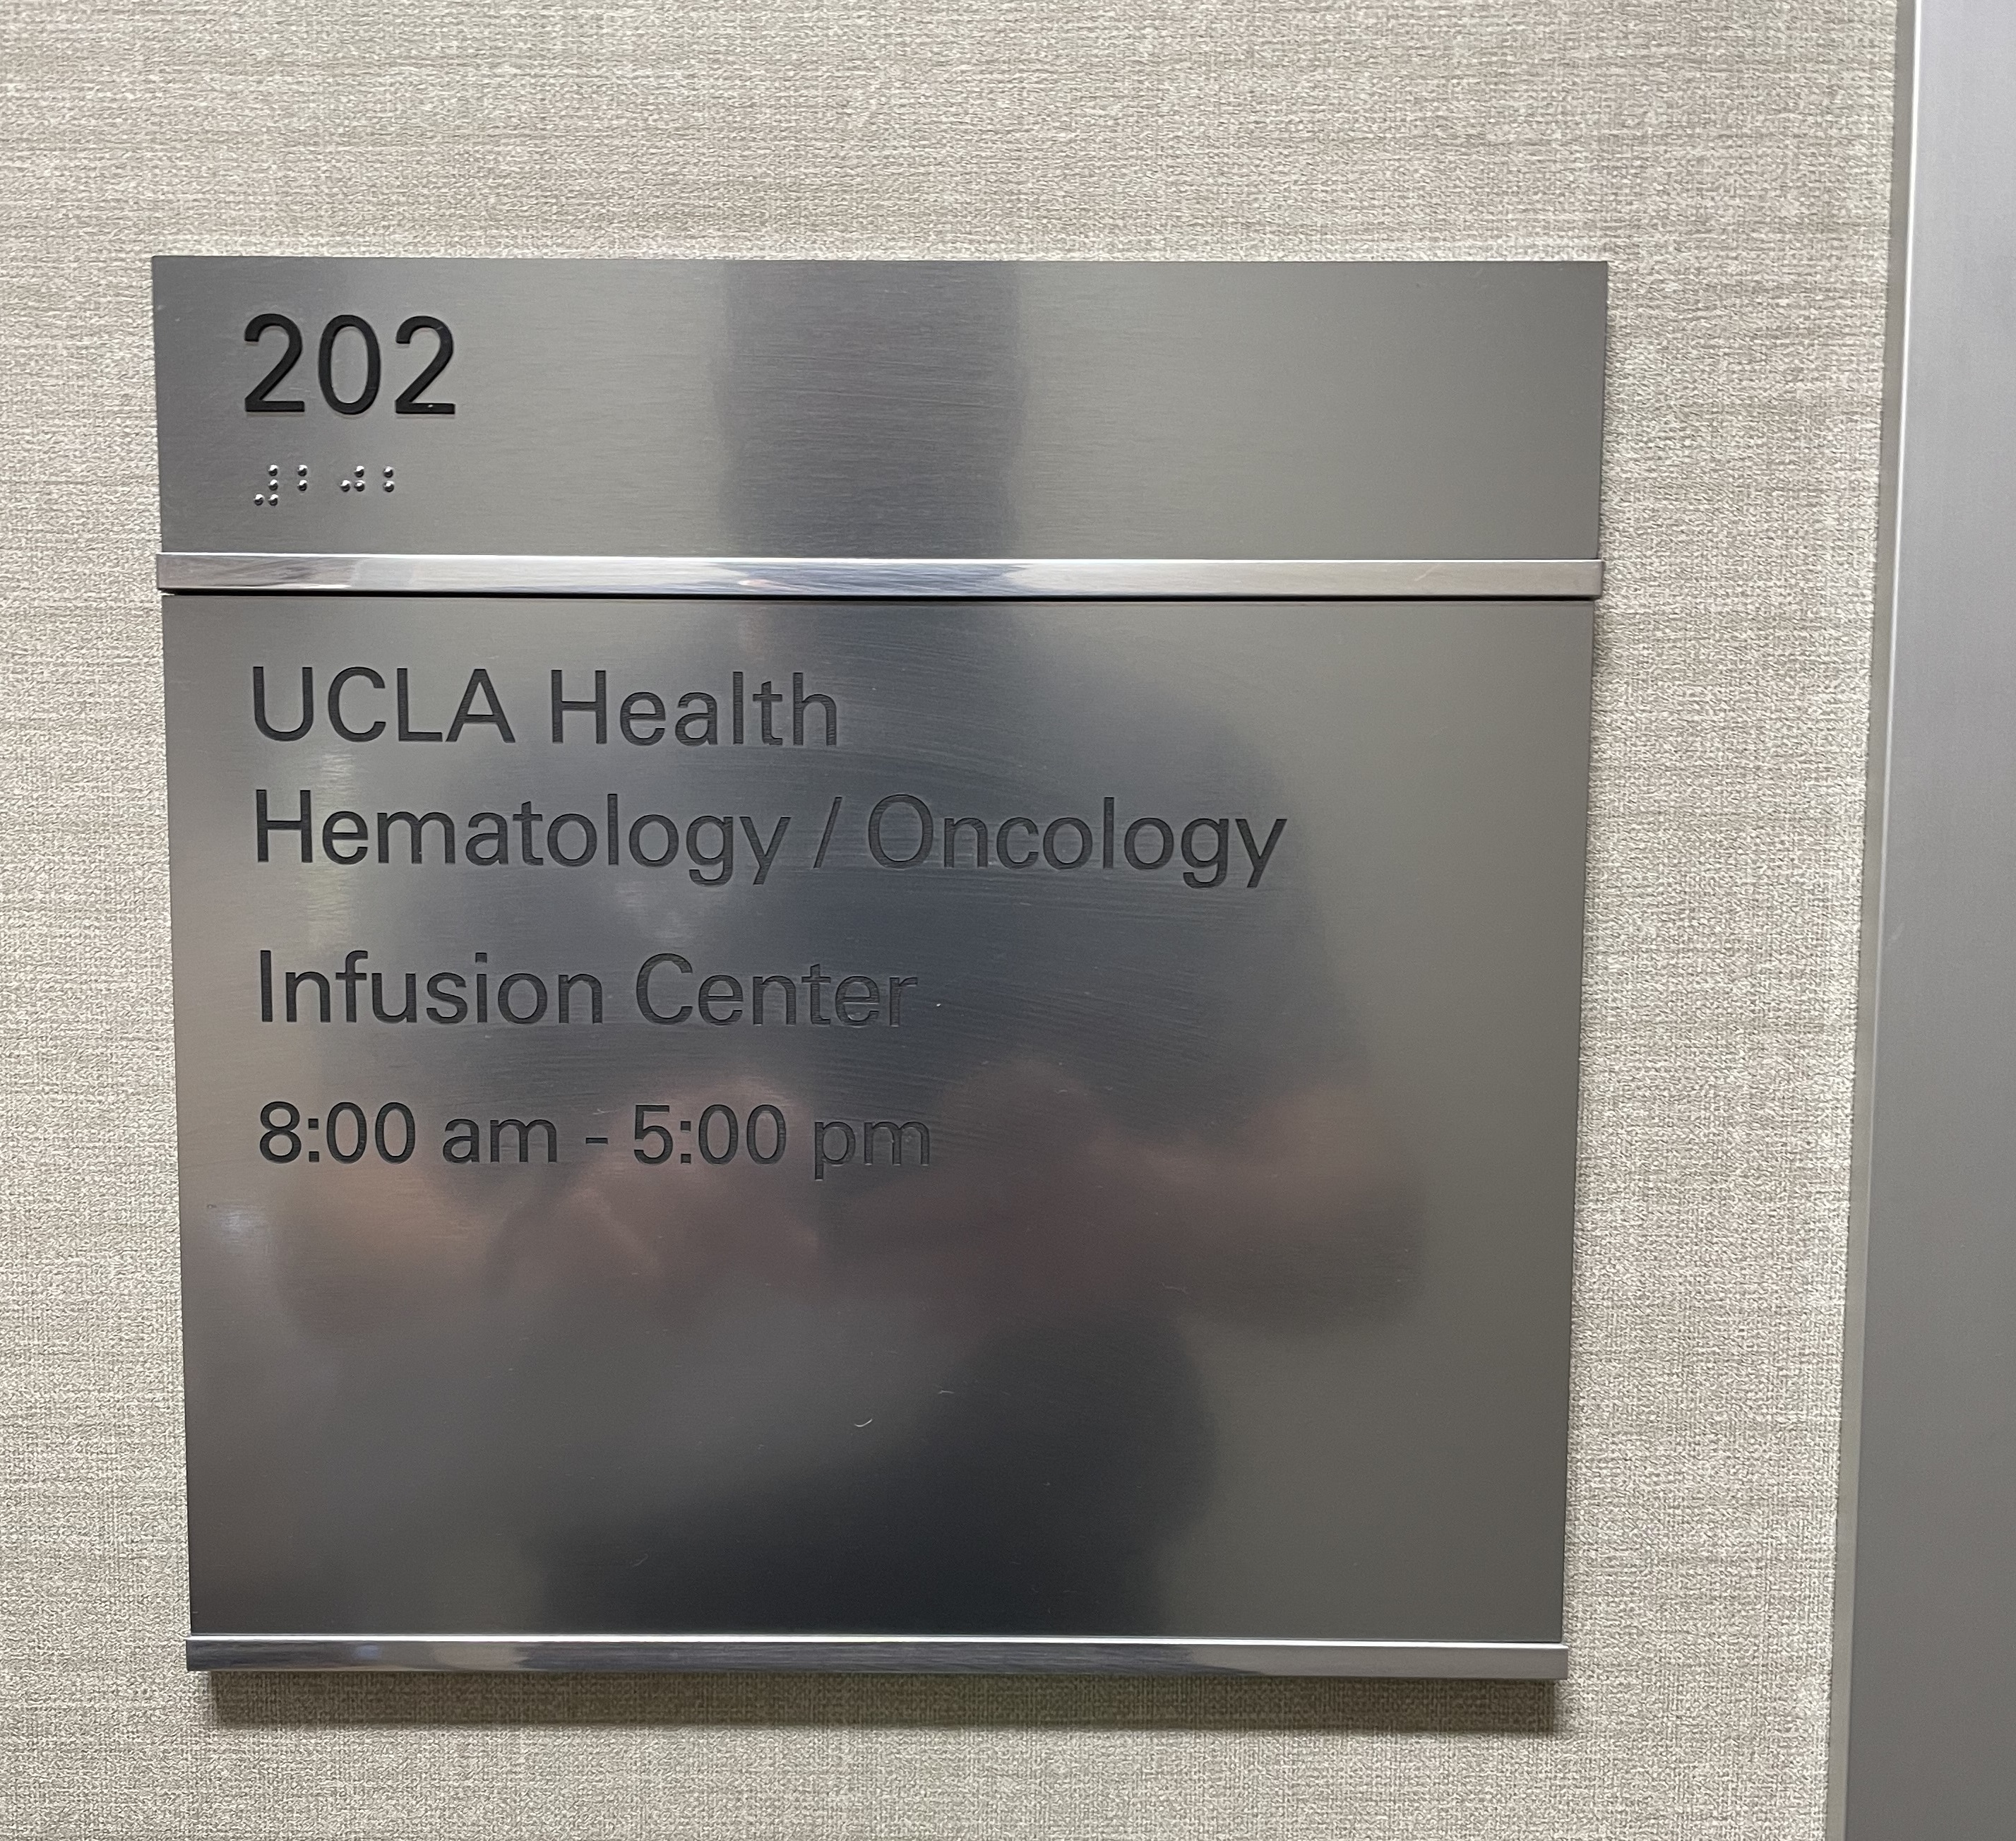 This is the directory suite plaque we made for UCLA Health. With this, the Westlake Village institution's halls will be easier to navigate.